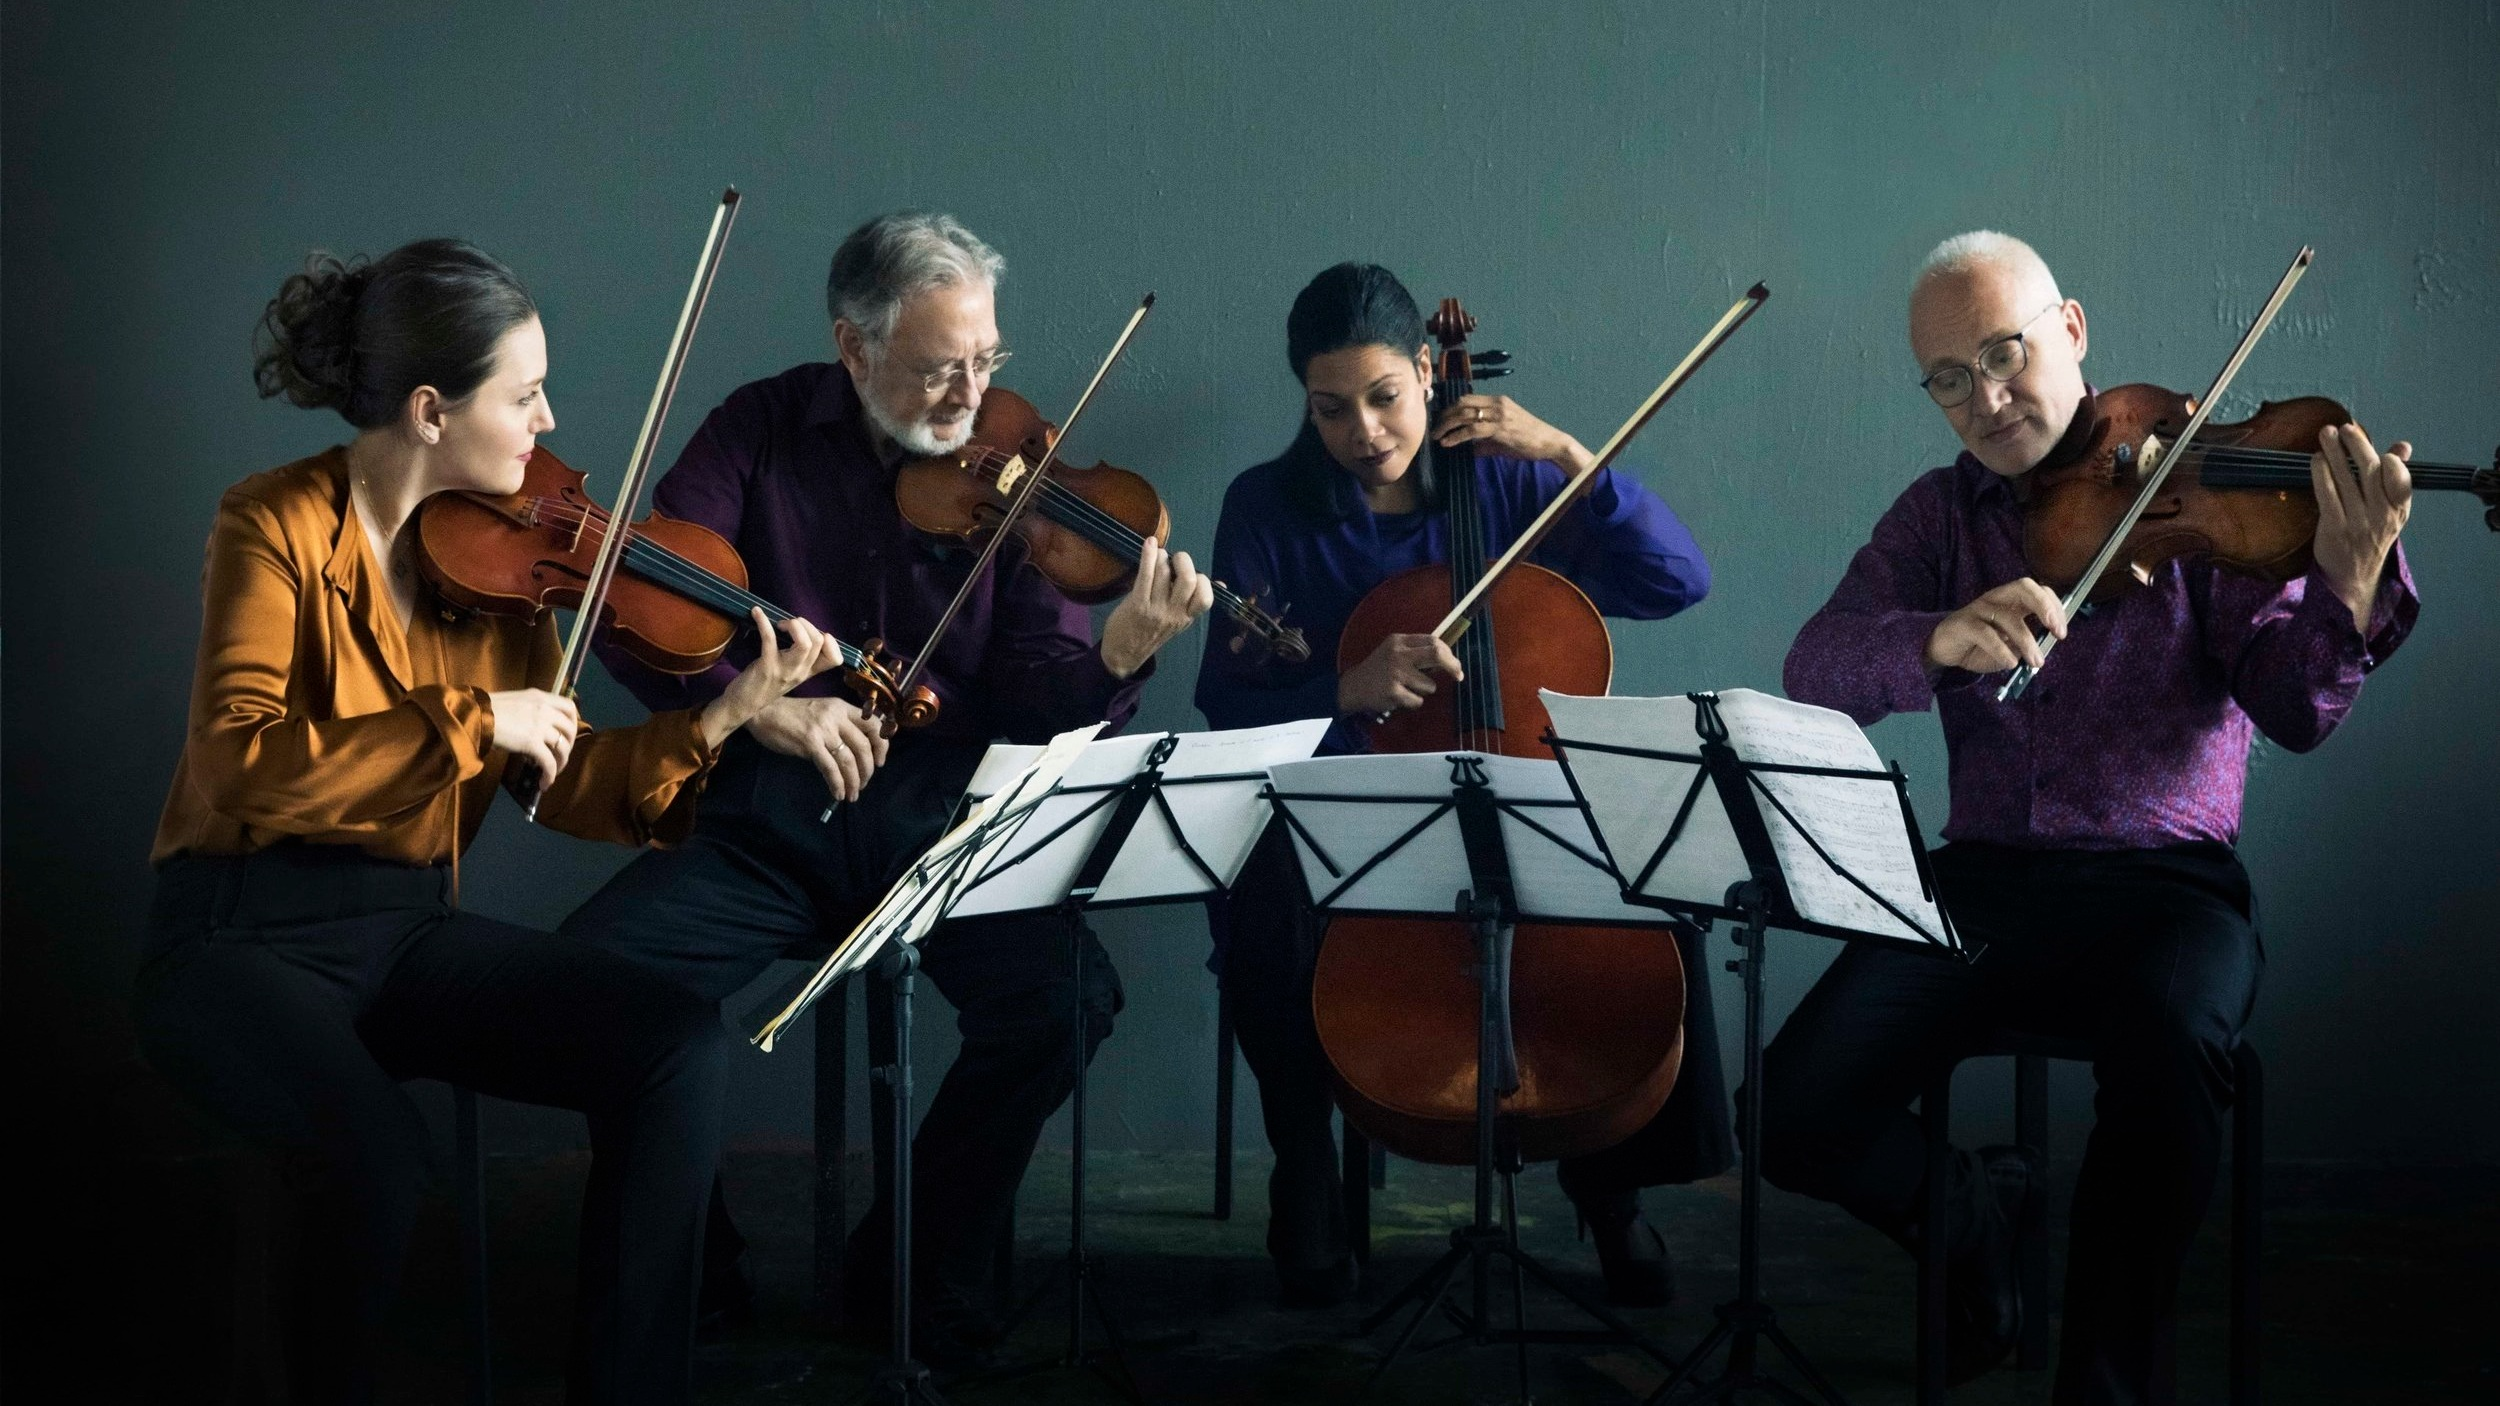 The Gala - Juilliard String QuartetMotown Mansion - Sep 27 - Limited Seating